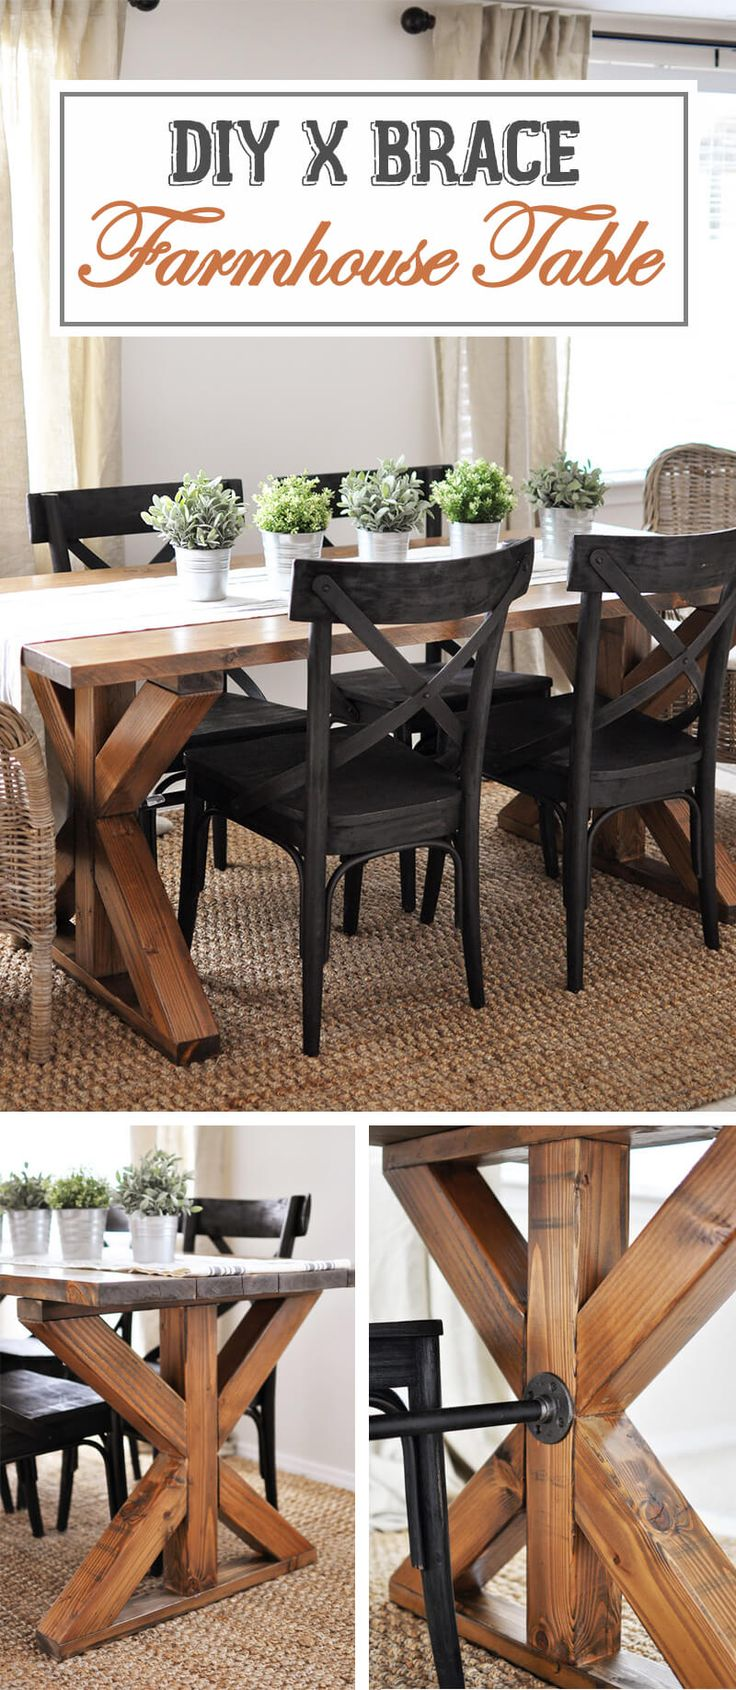 Best 25 Modern farmhouse table ideas on Pinterest Farm  : 6c9bdb95d2eb8d86f5f00538326bbaaa from www.pinterest.com size 736 x 1690 jpeg 223kB